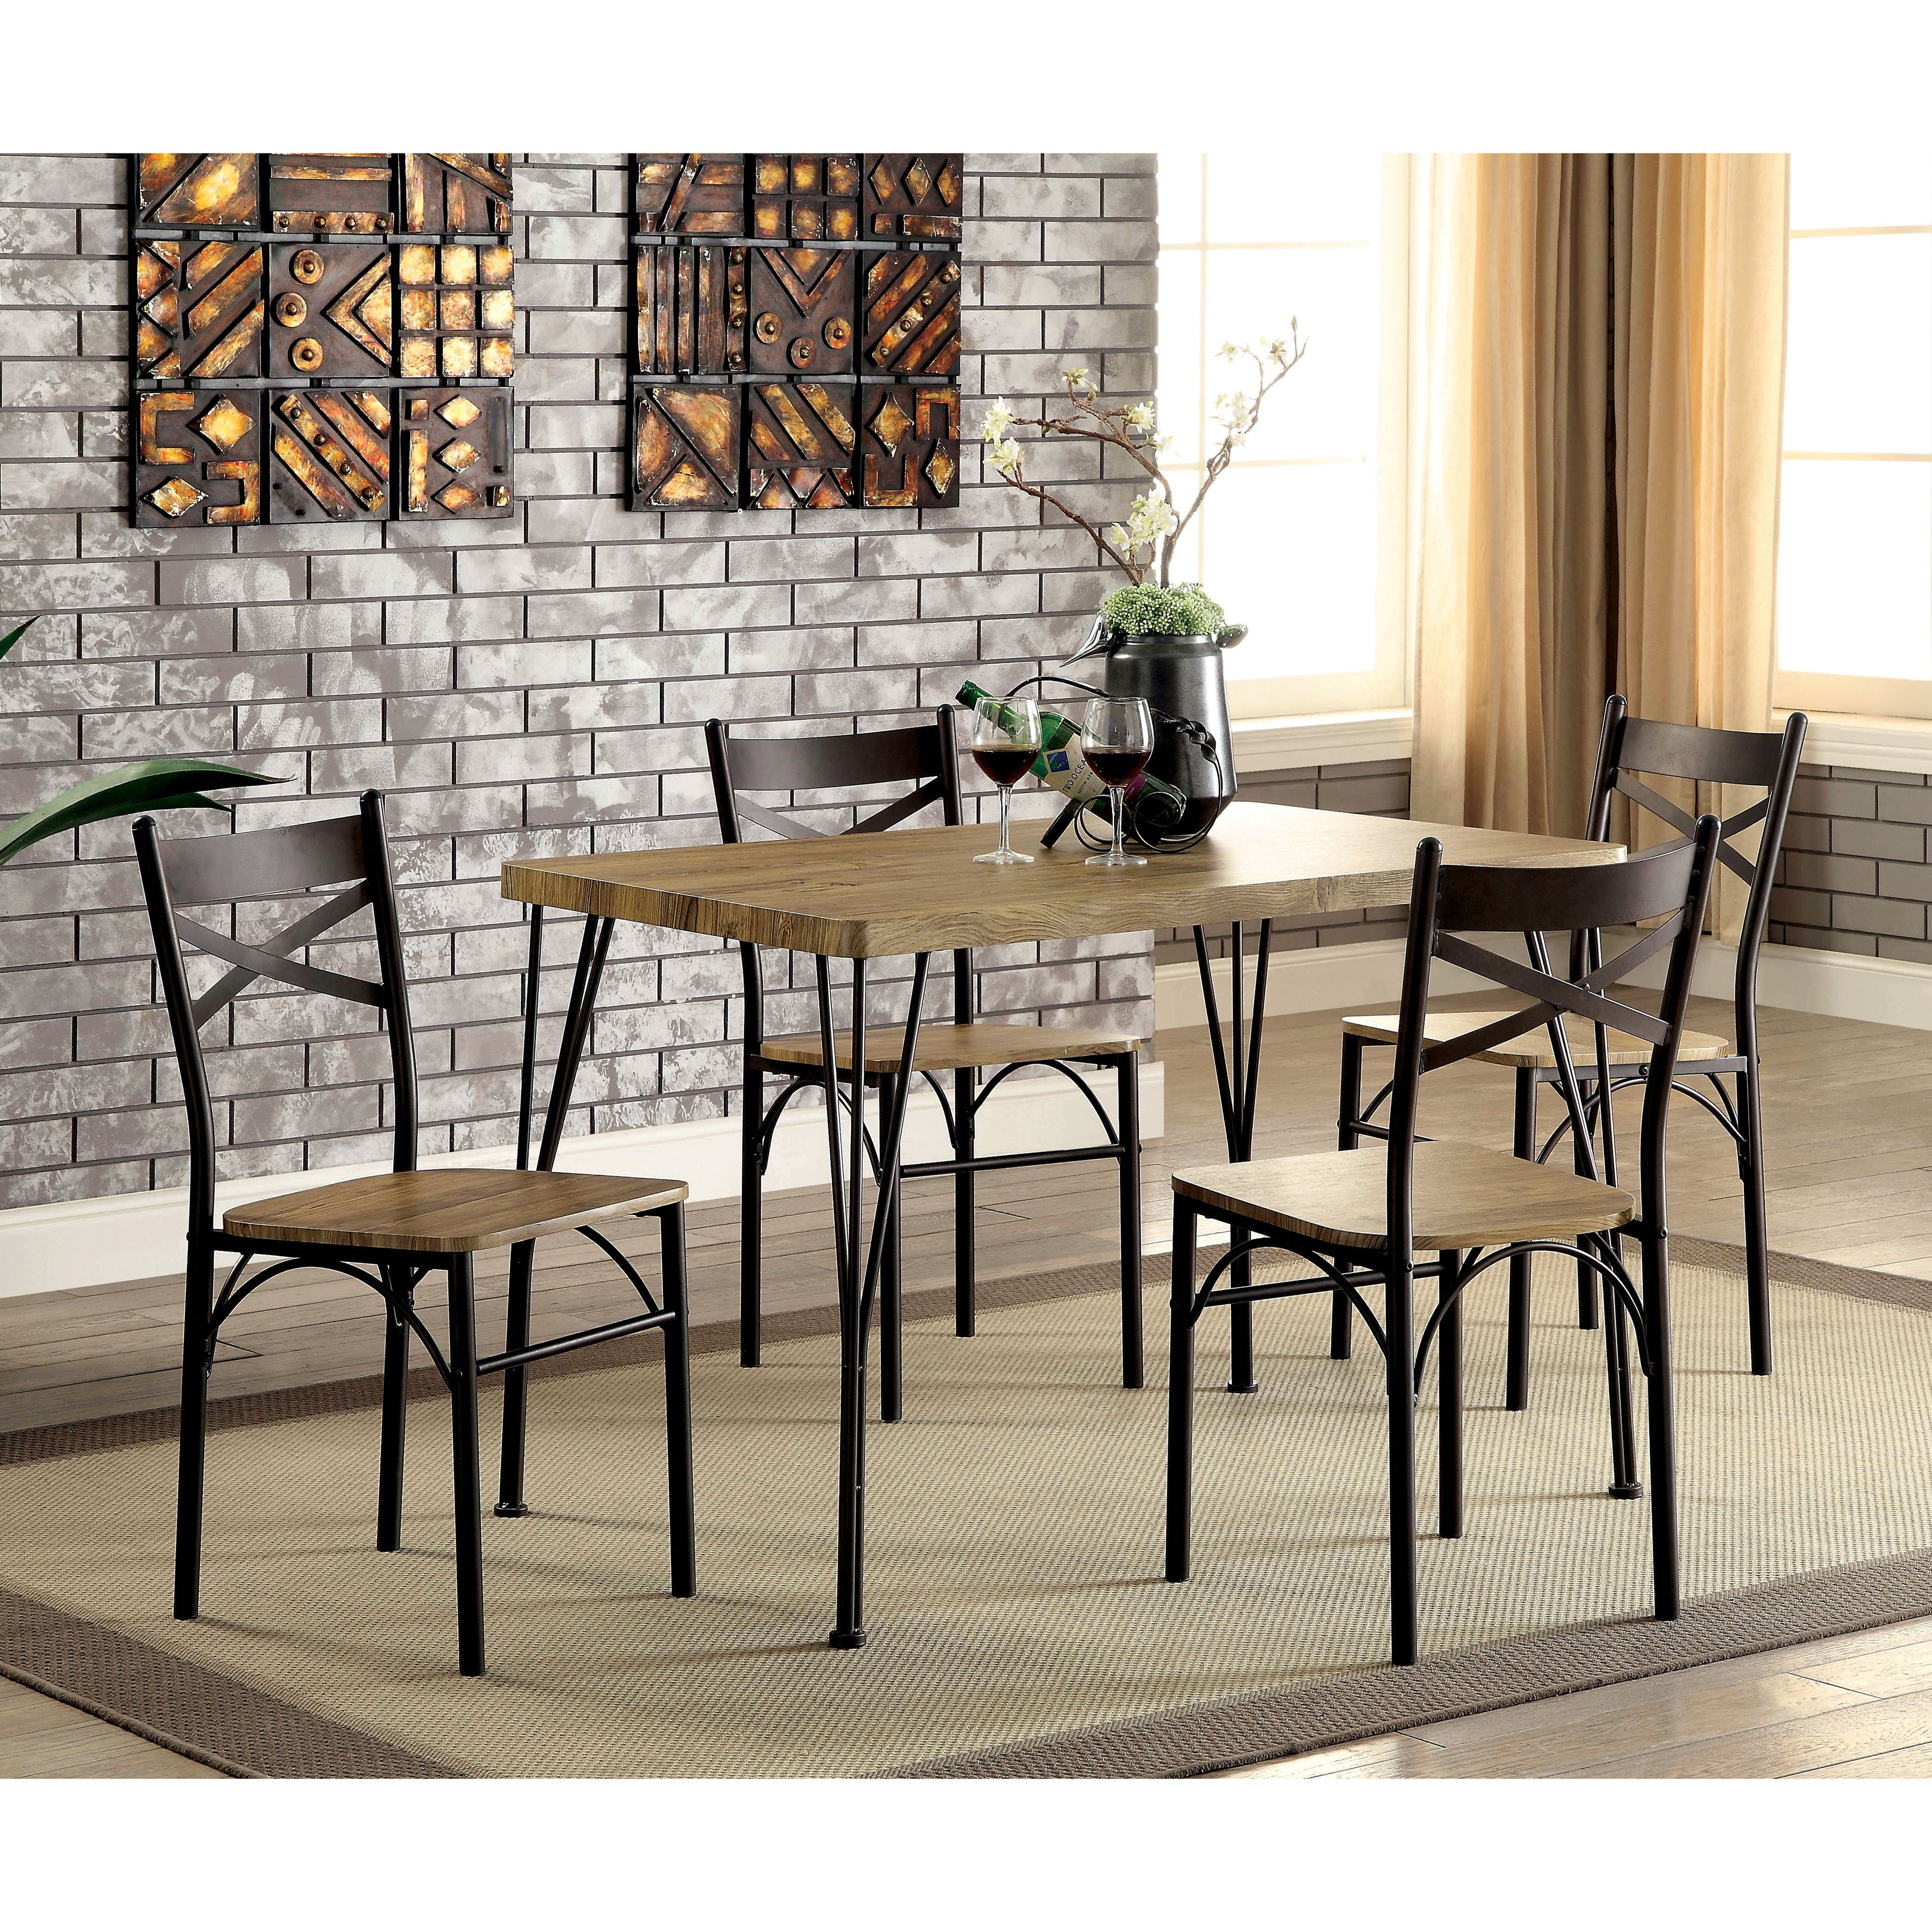 Shop furniture of america hathway industrial 5 piece dark bronze small dining set on sale free shipping today overstock com 14538630